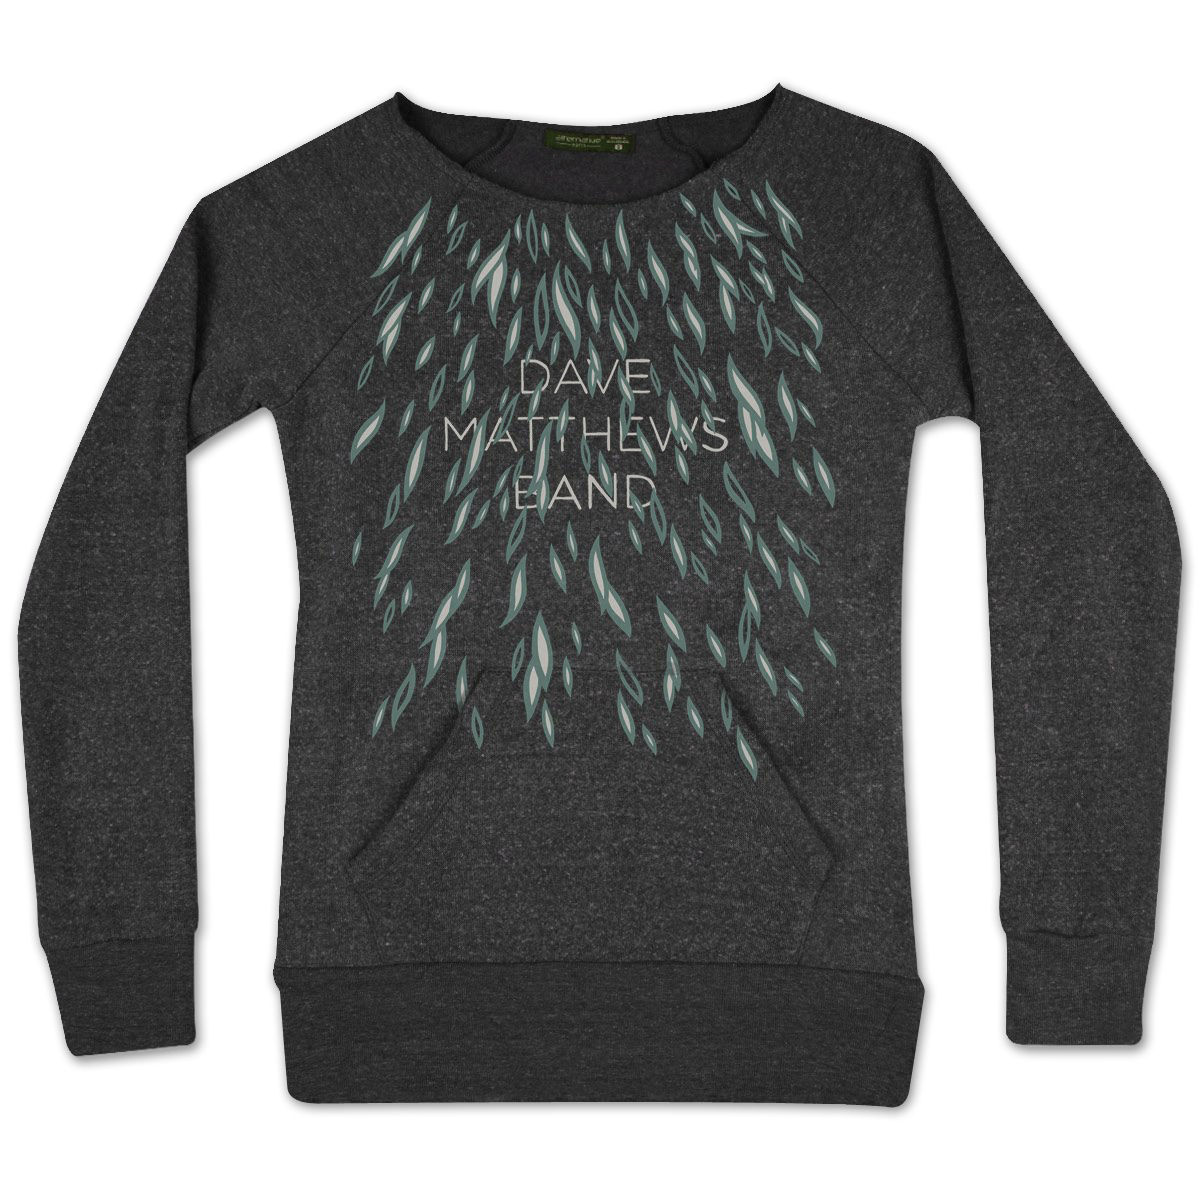 Falling Feathers Flashdance Sweat